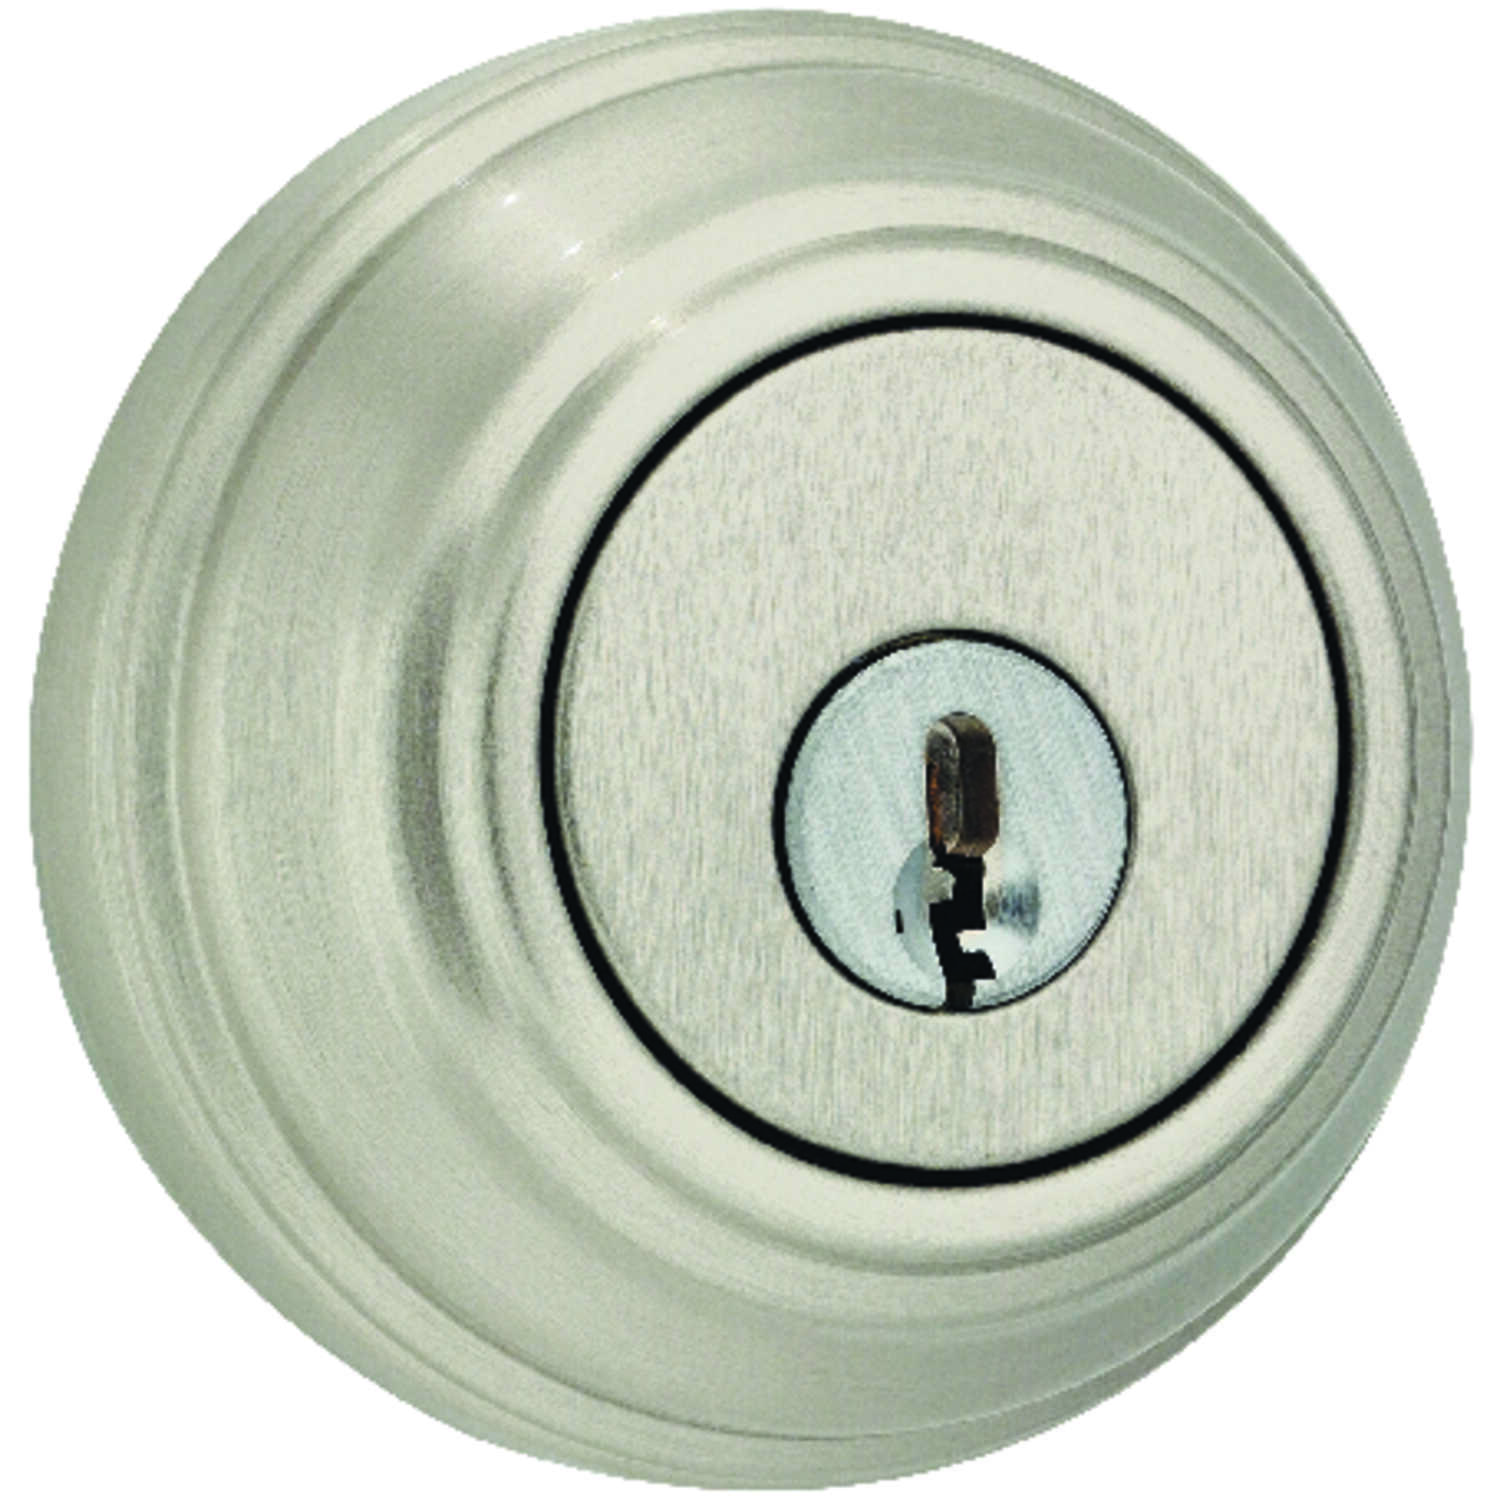 Weiser  Satin Nickel  Metal  Double Cylinder Smart Key Deadbolt